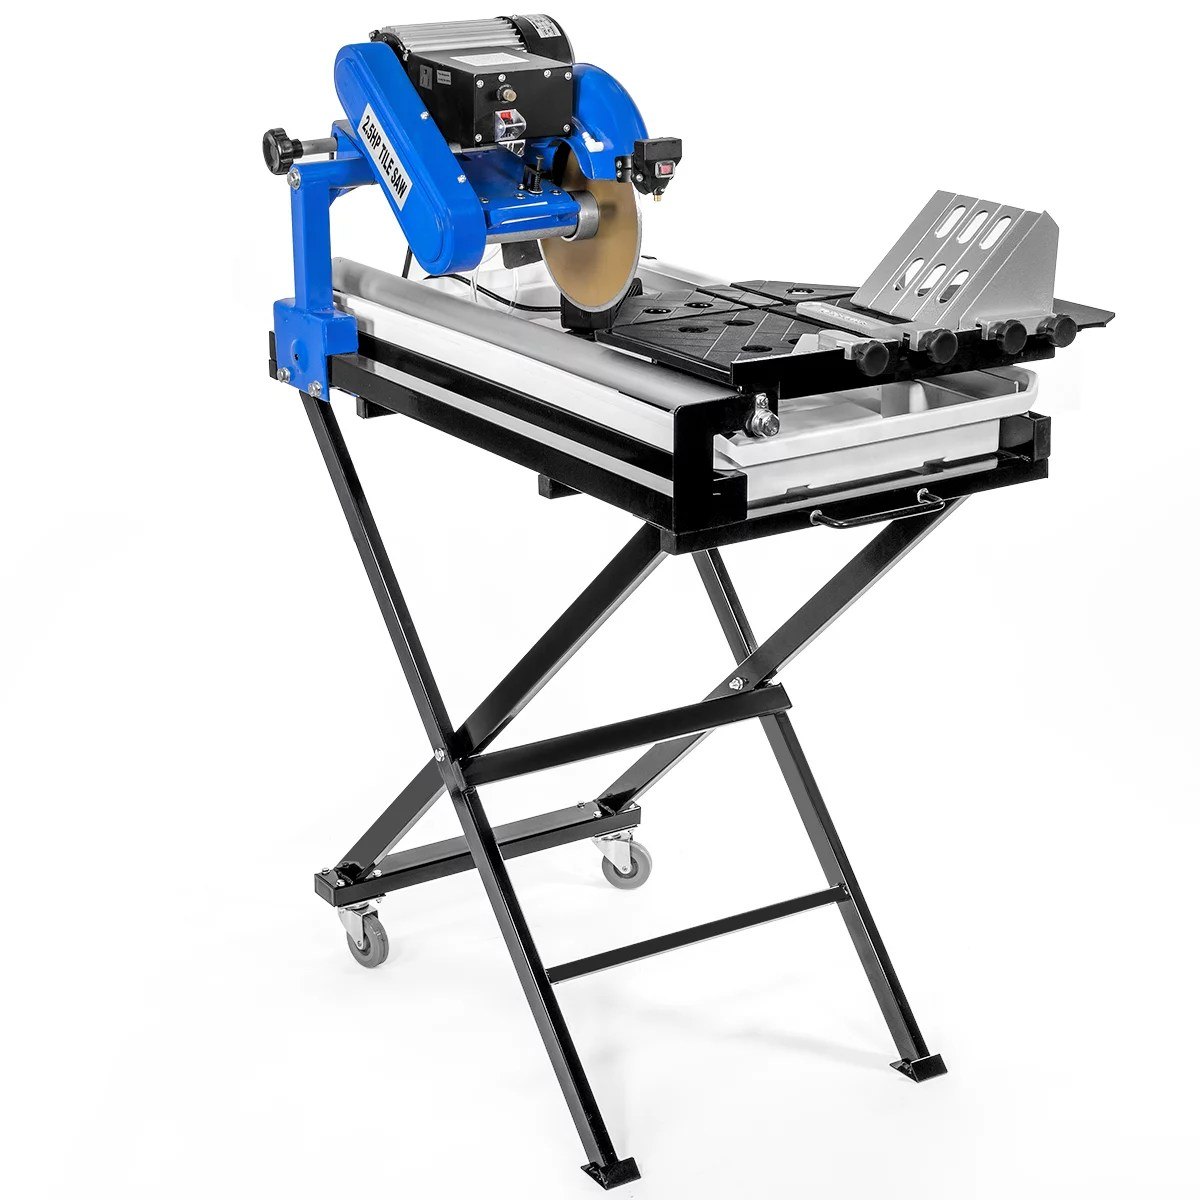 stark 27 inch wet tile saw cut build in bean light guide water pump w tray foldable stands 2 5hp motor